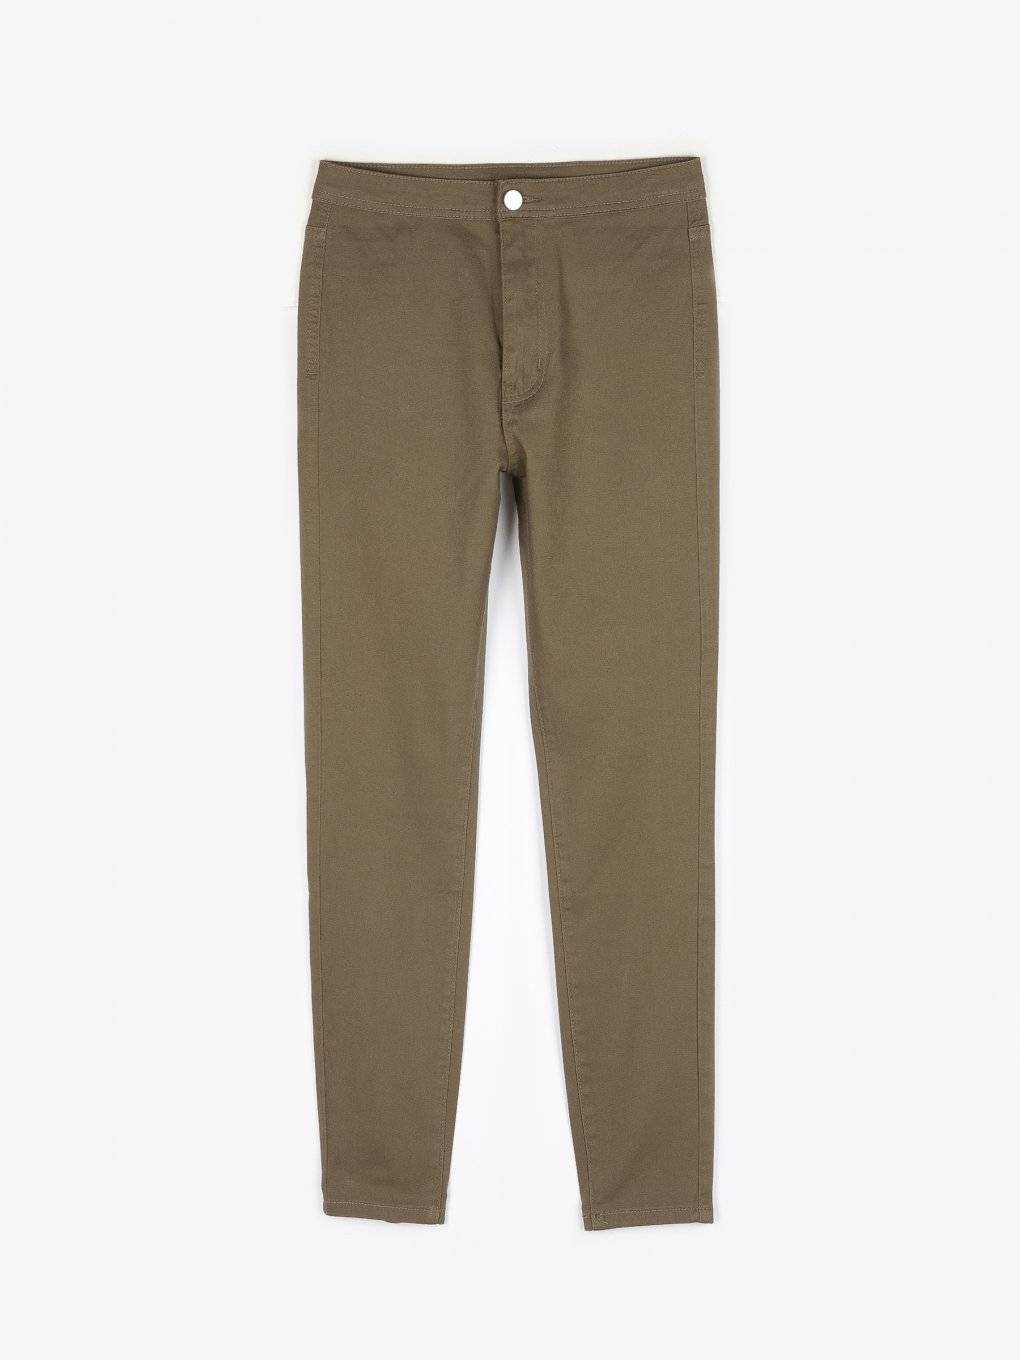 Basic stretchy trousers